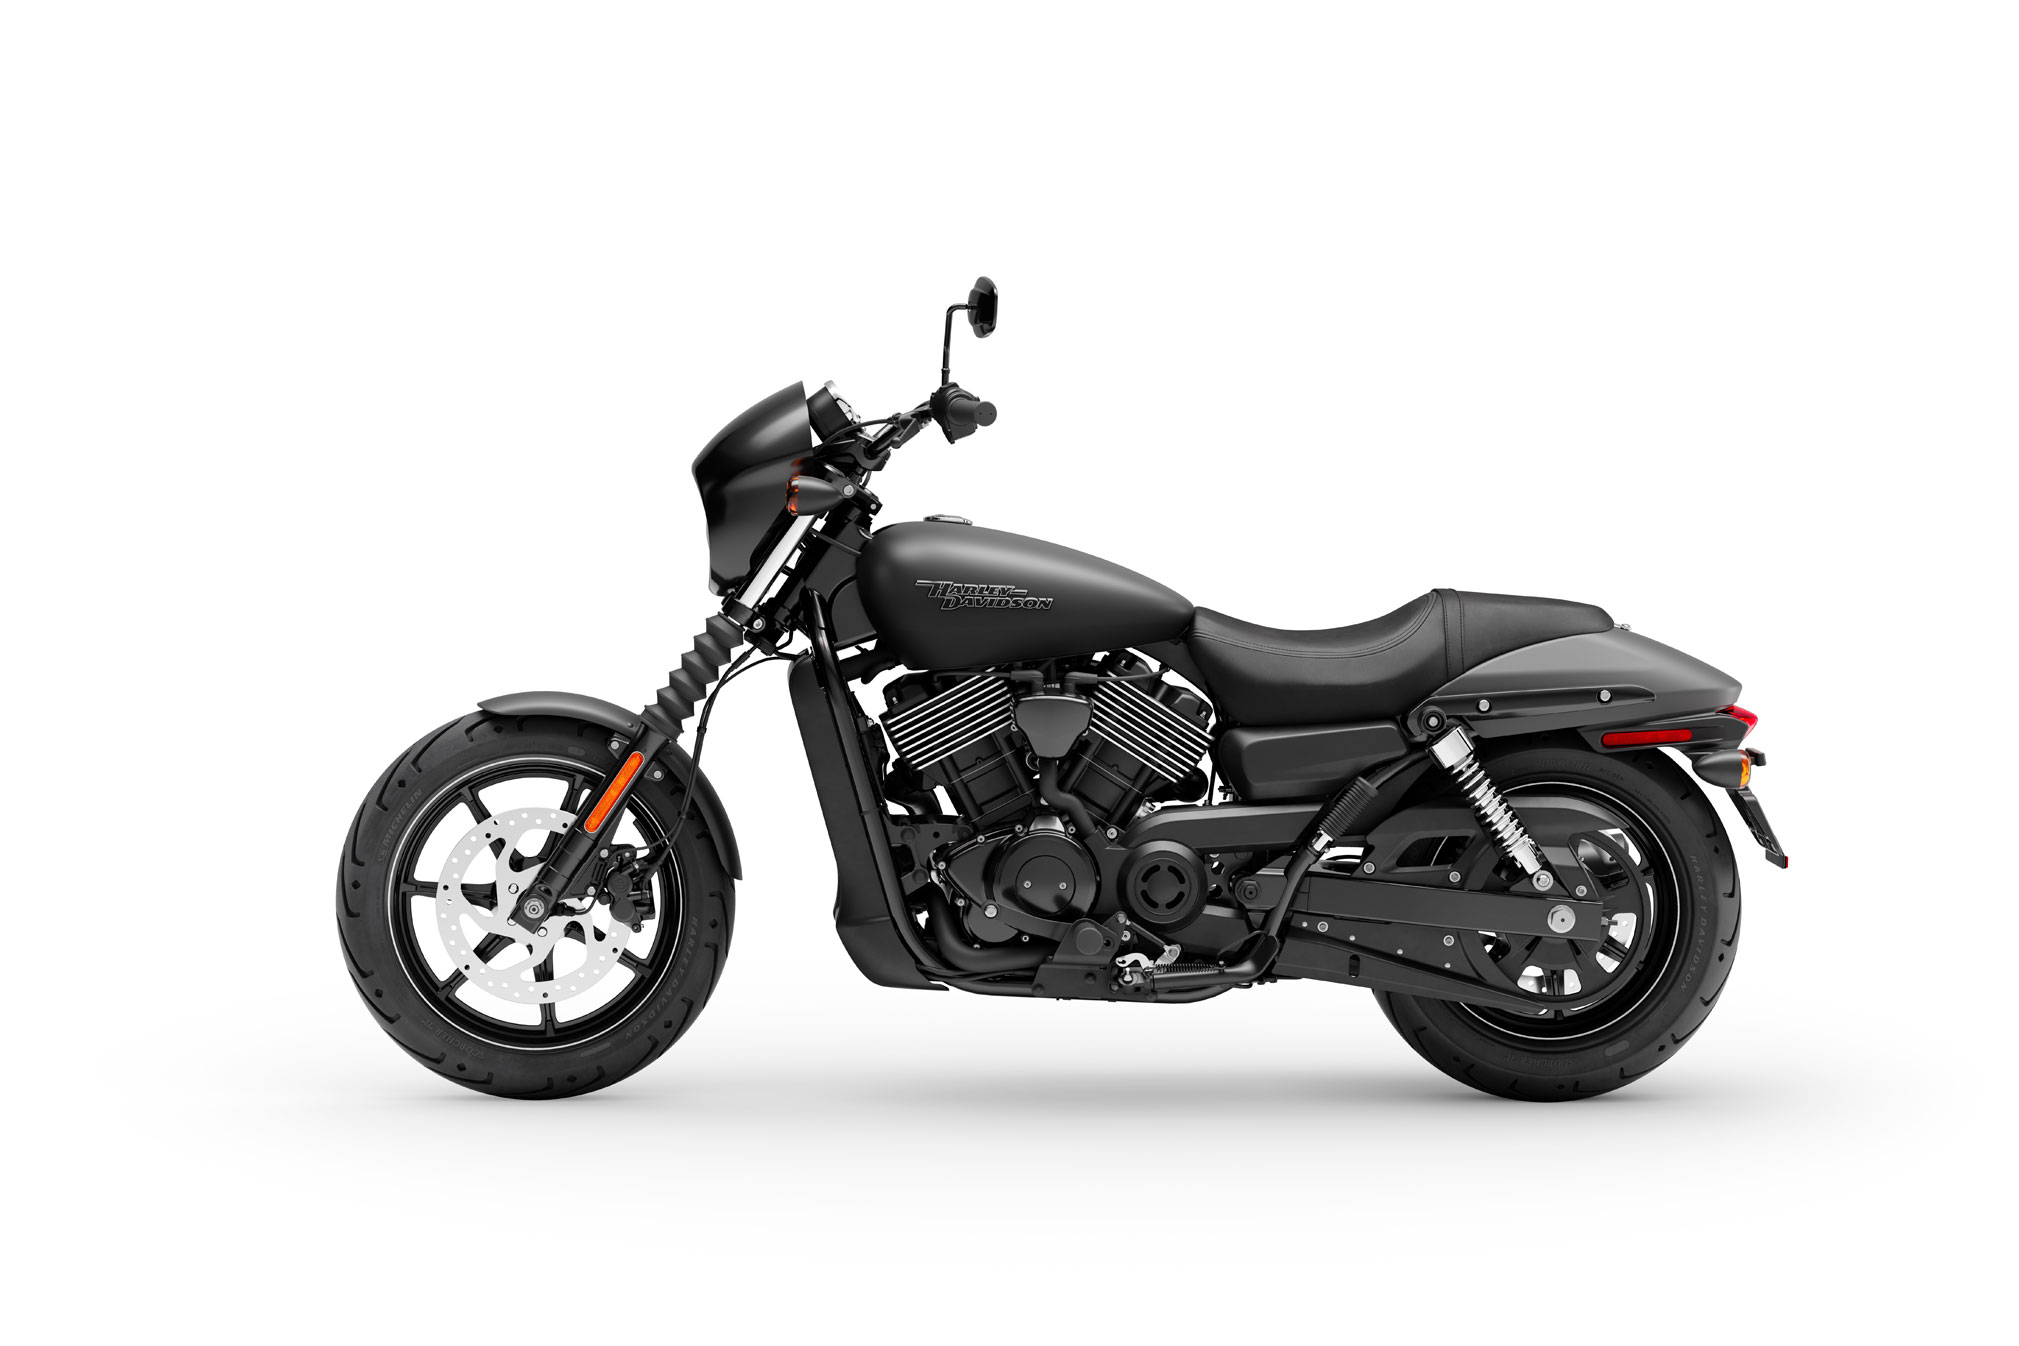 2019 harley davidson street 750 guide total motorcycle. Black Bedroom Furniture Sets. Home Design Ideas